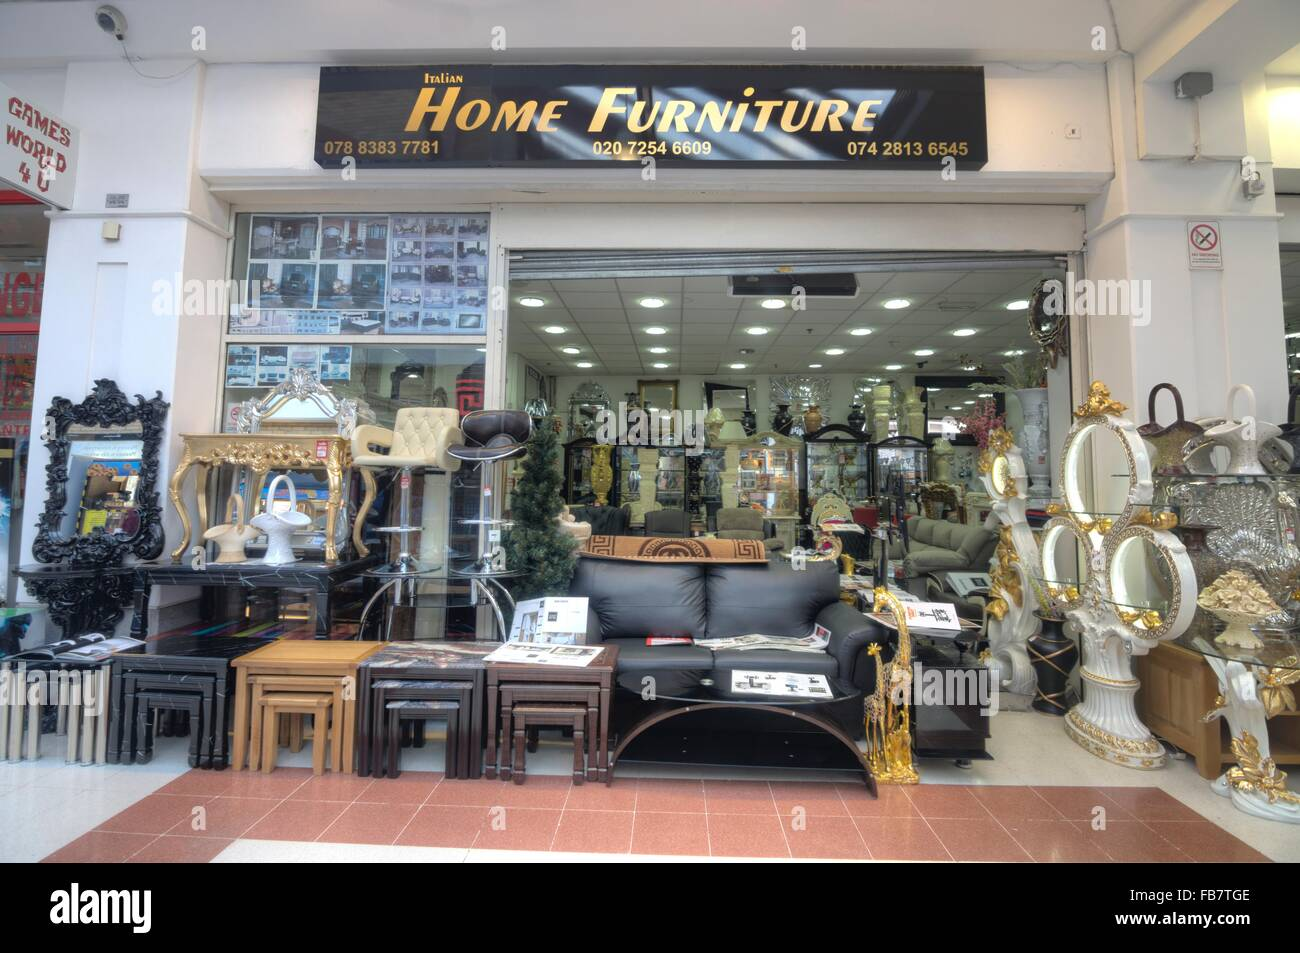 cheap furniture shop.   cheap furniture. - Stock Image